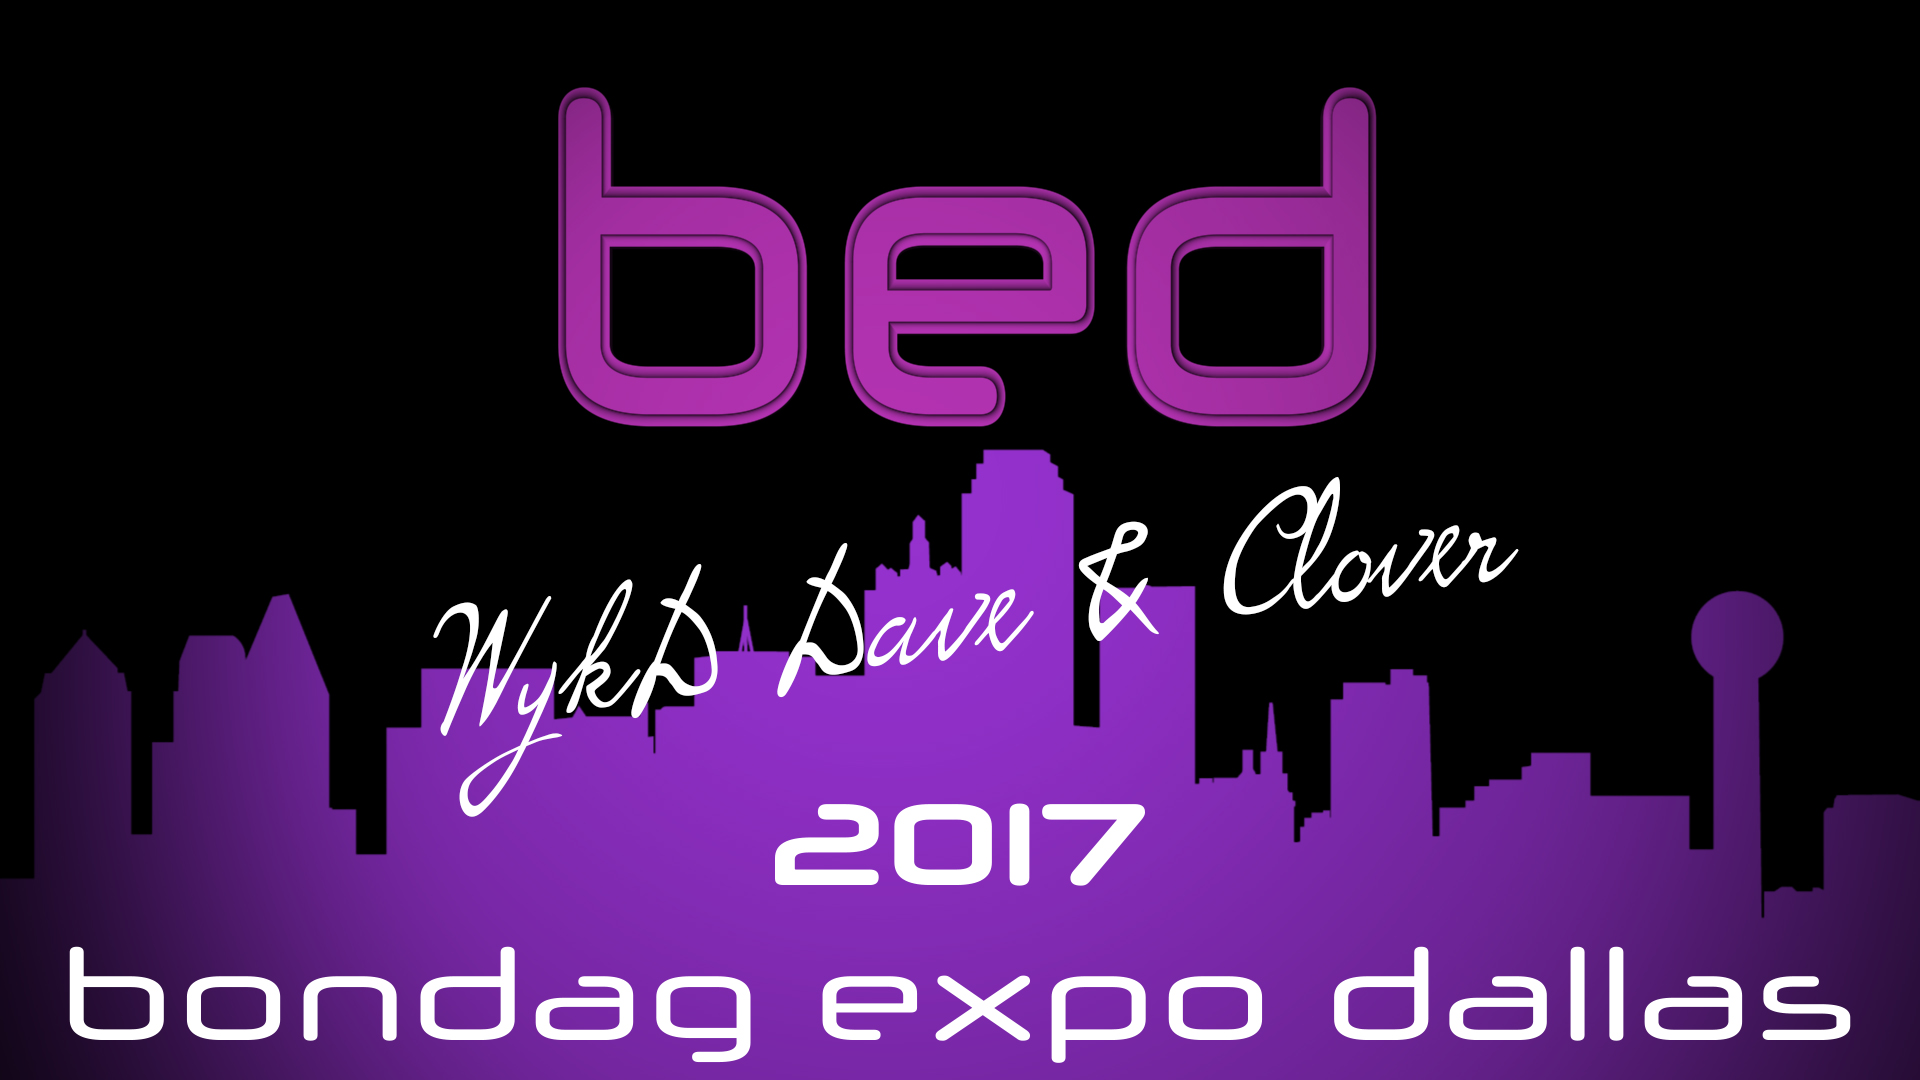 Bondage Expo Dallas 2017